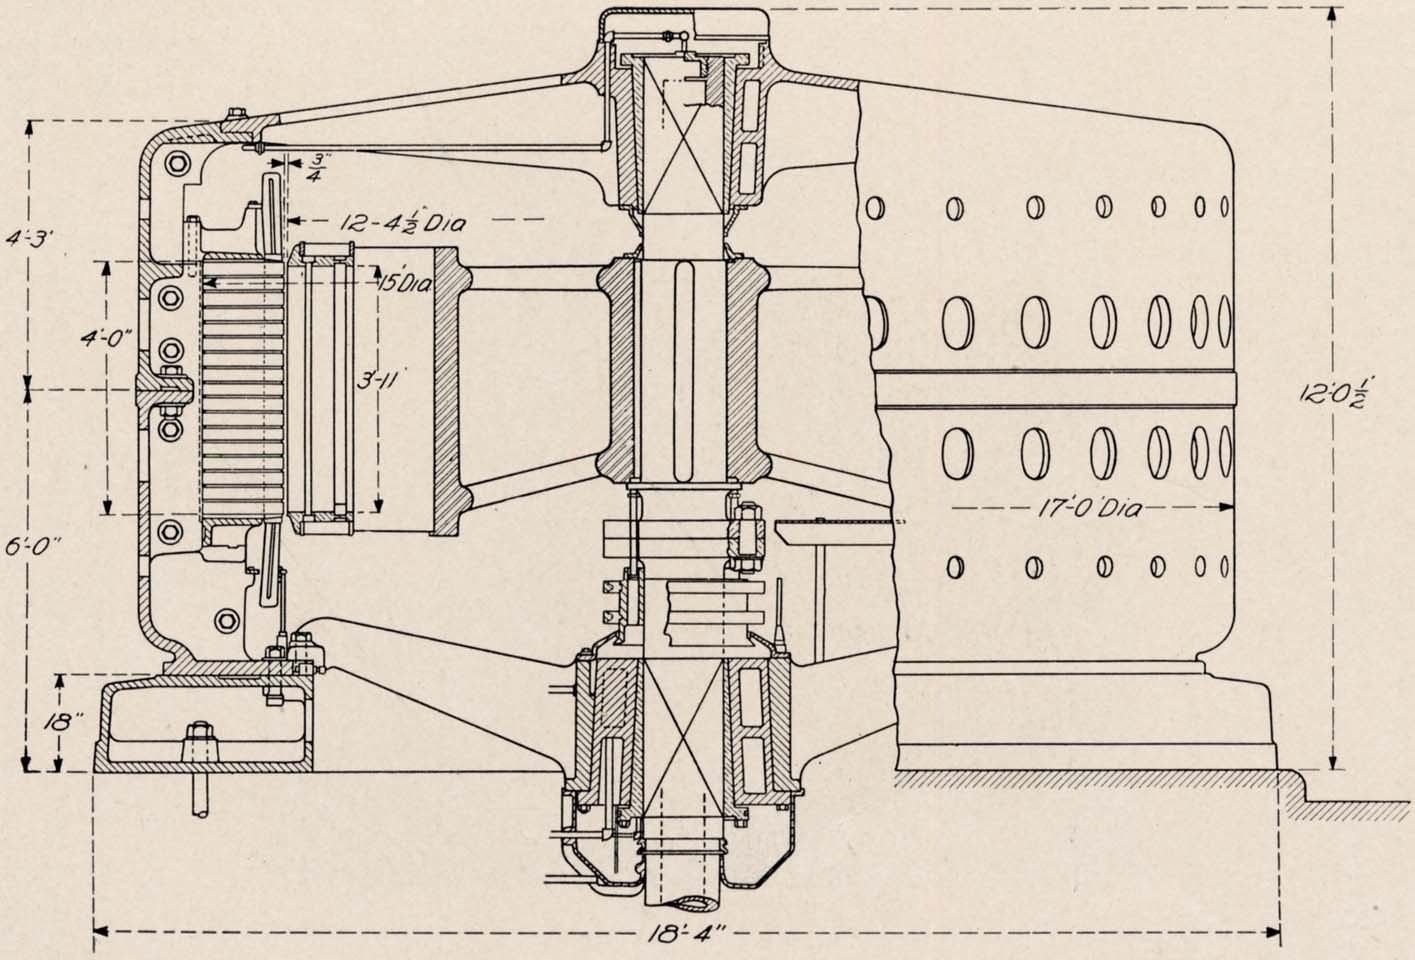 hight resolution of cross section assembly of 10 000 h p 10 000 volt generator building for canadian niagara falls